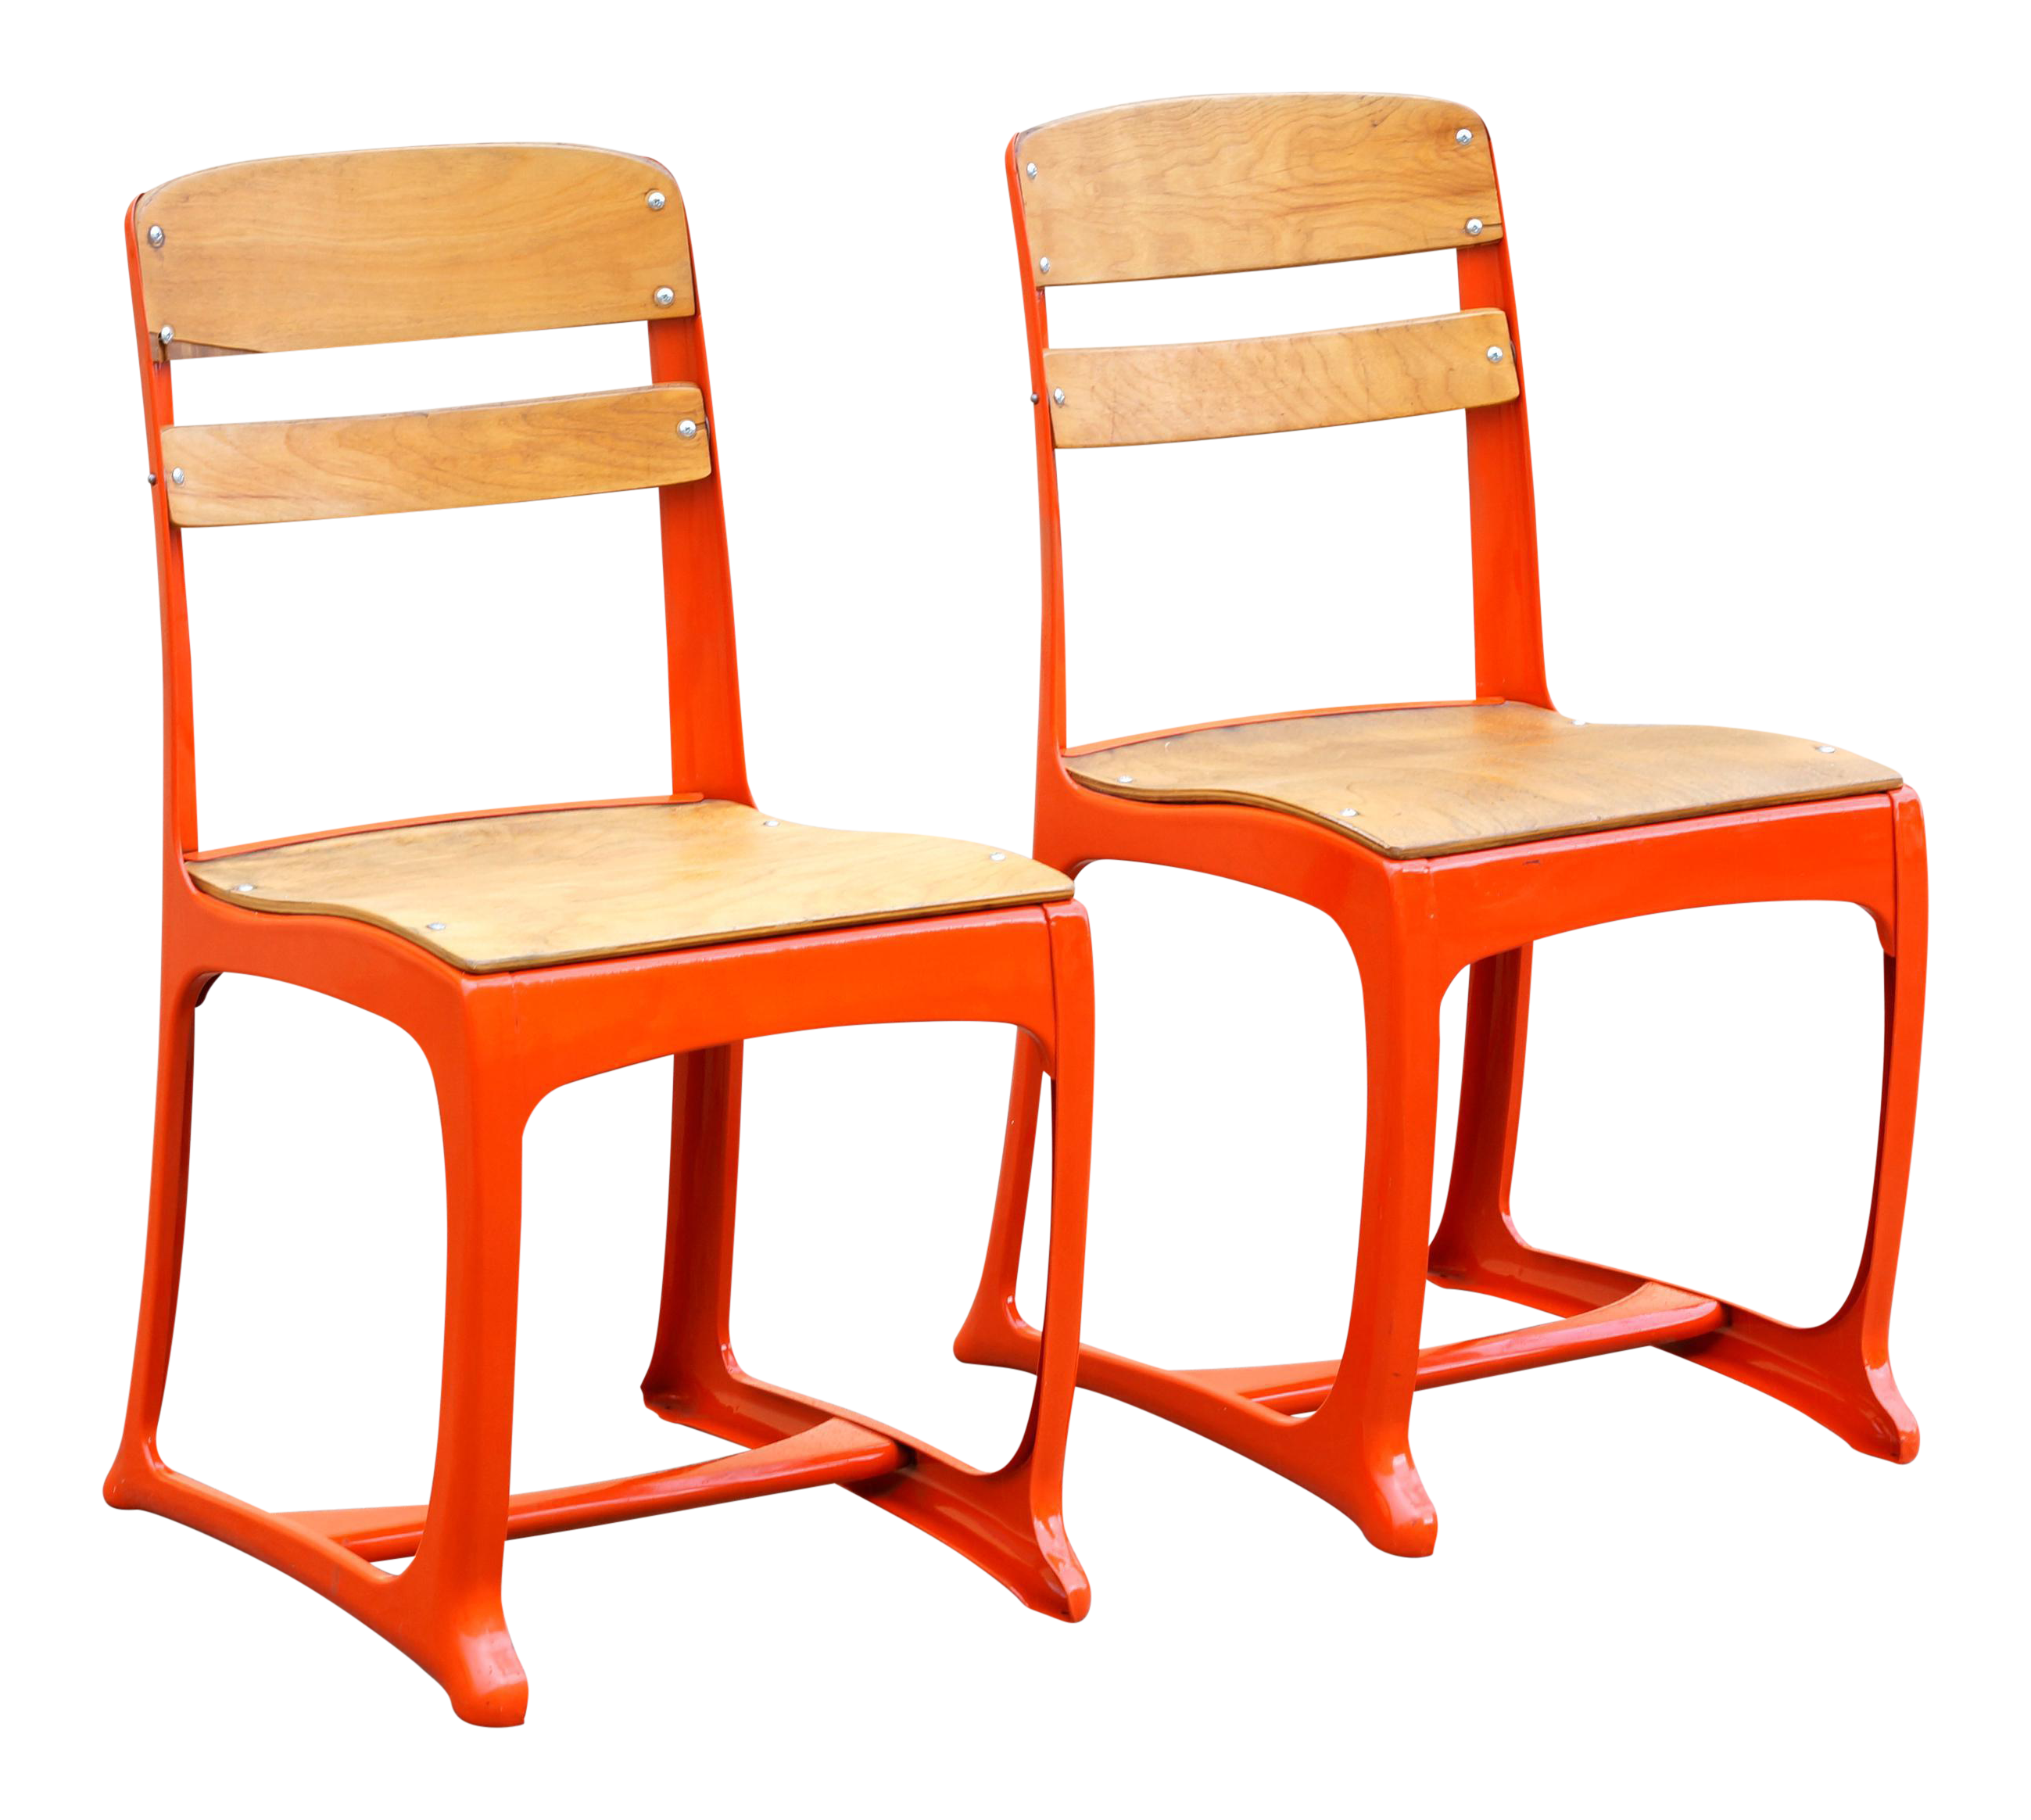 https://chairish-prod.freetls.fastly.net/image/product/master/15e5e008-db7e-47ce-9311-60ee2c835ebe/pair-of-1950s-retro-wood-and-steel-school-chairs-refinished-8868